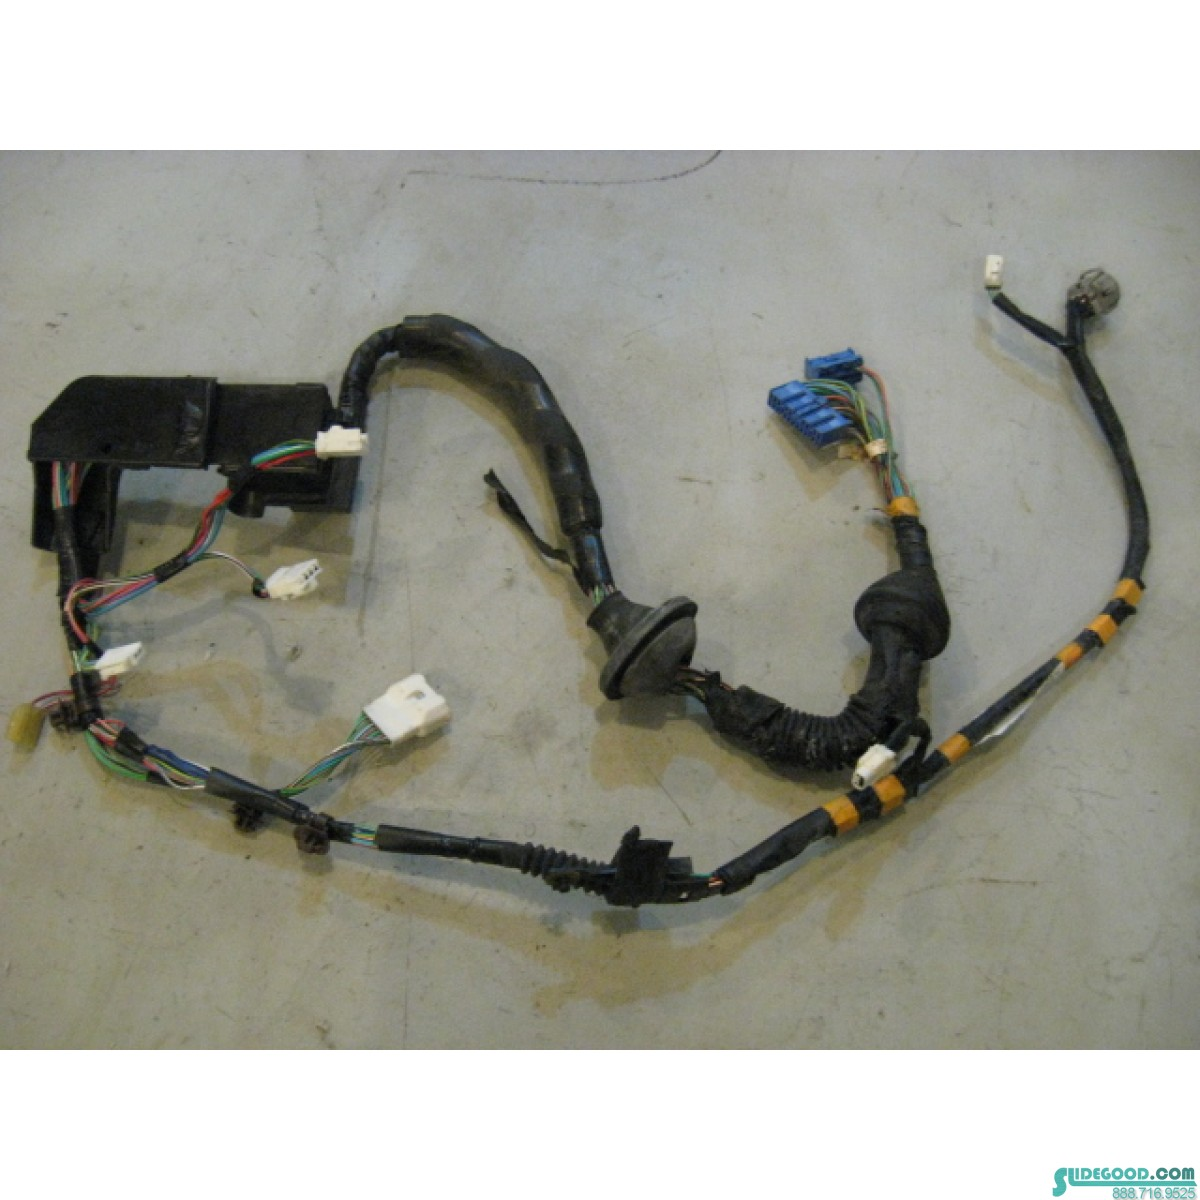 lexus sc400 rh passenger door wiring harness 82151 24231 r10773  at Wiring Harness Part Number For A 92 Sc400